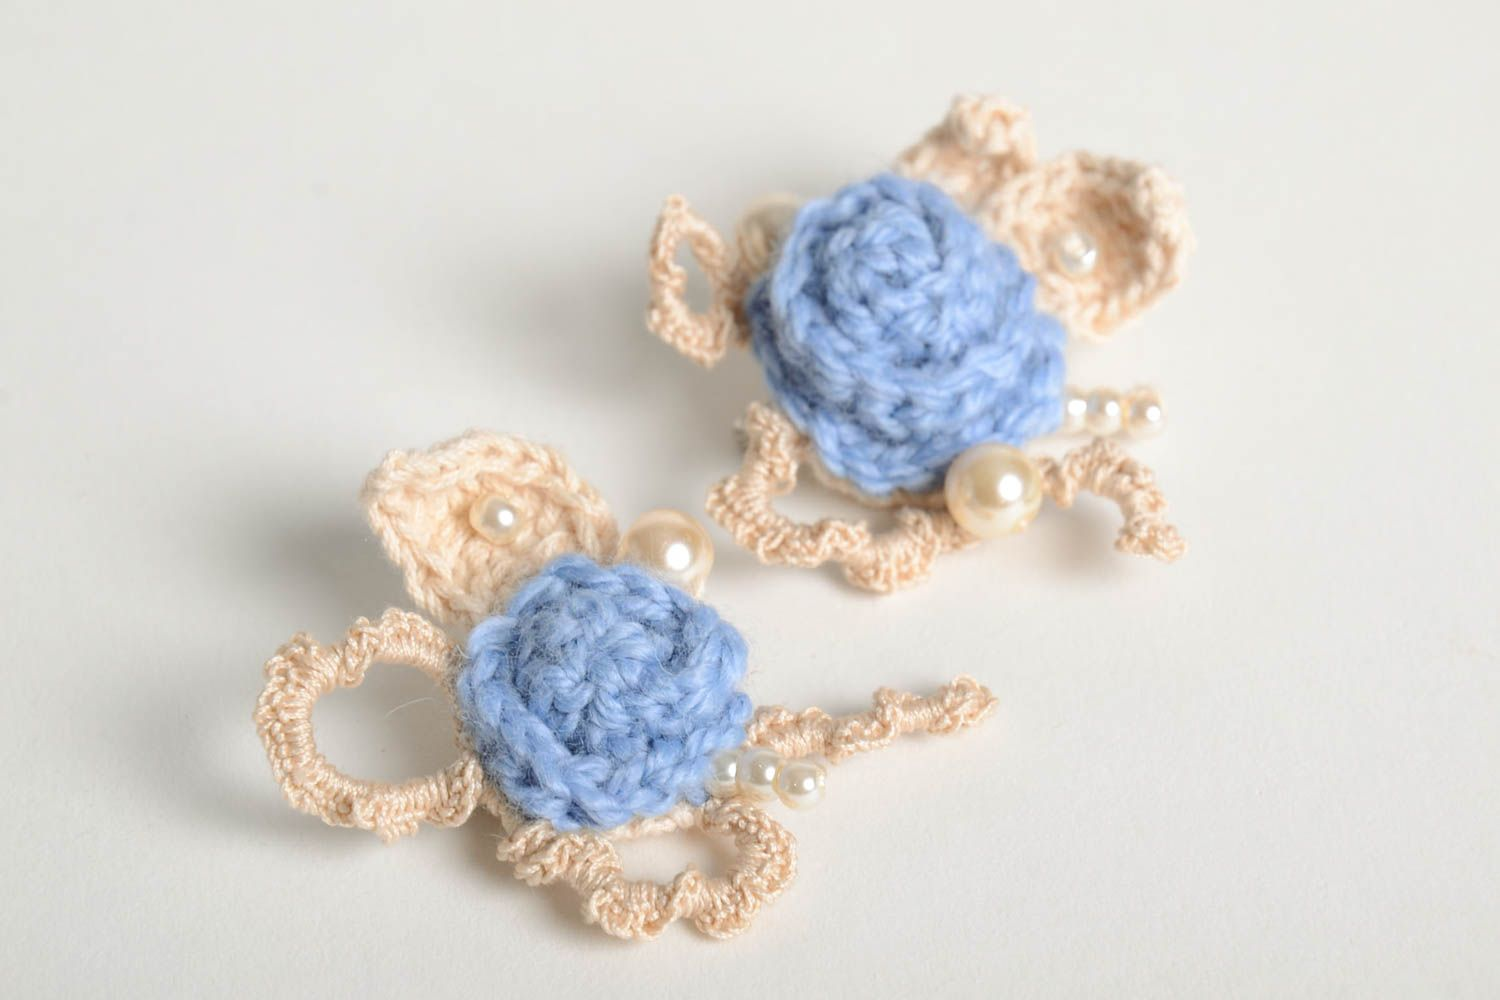 Fabric brooch handmade crocheted brooch textile brooches fashion accessories photo 2